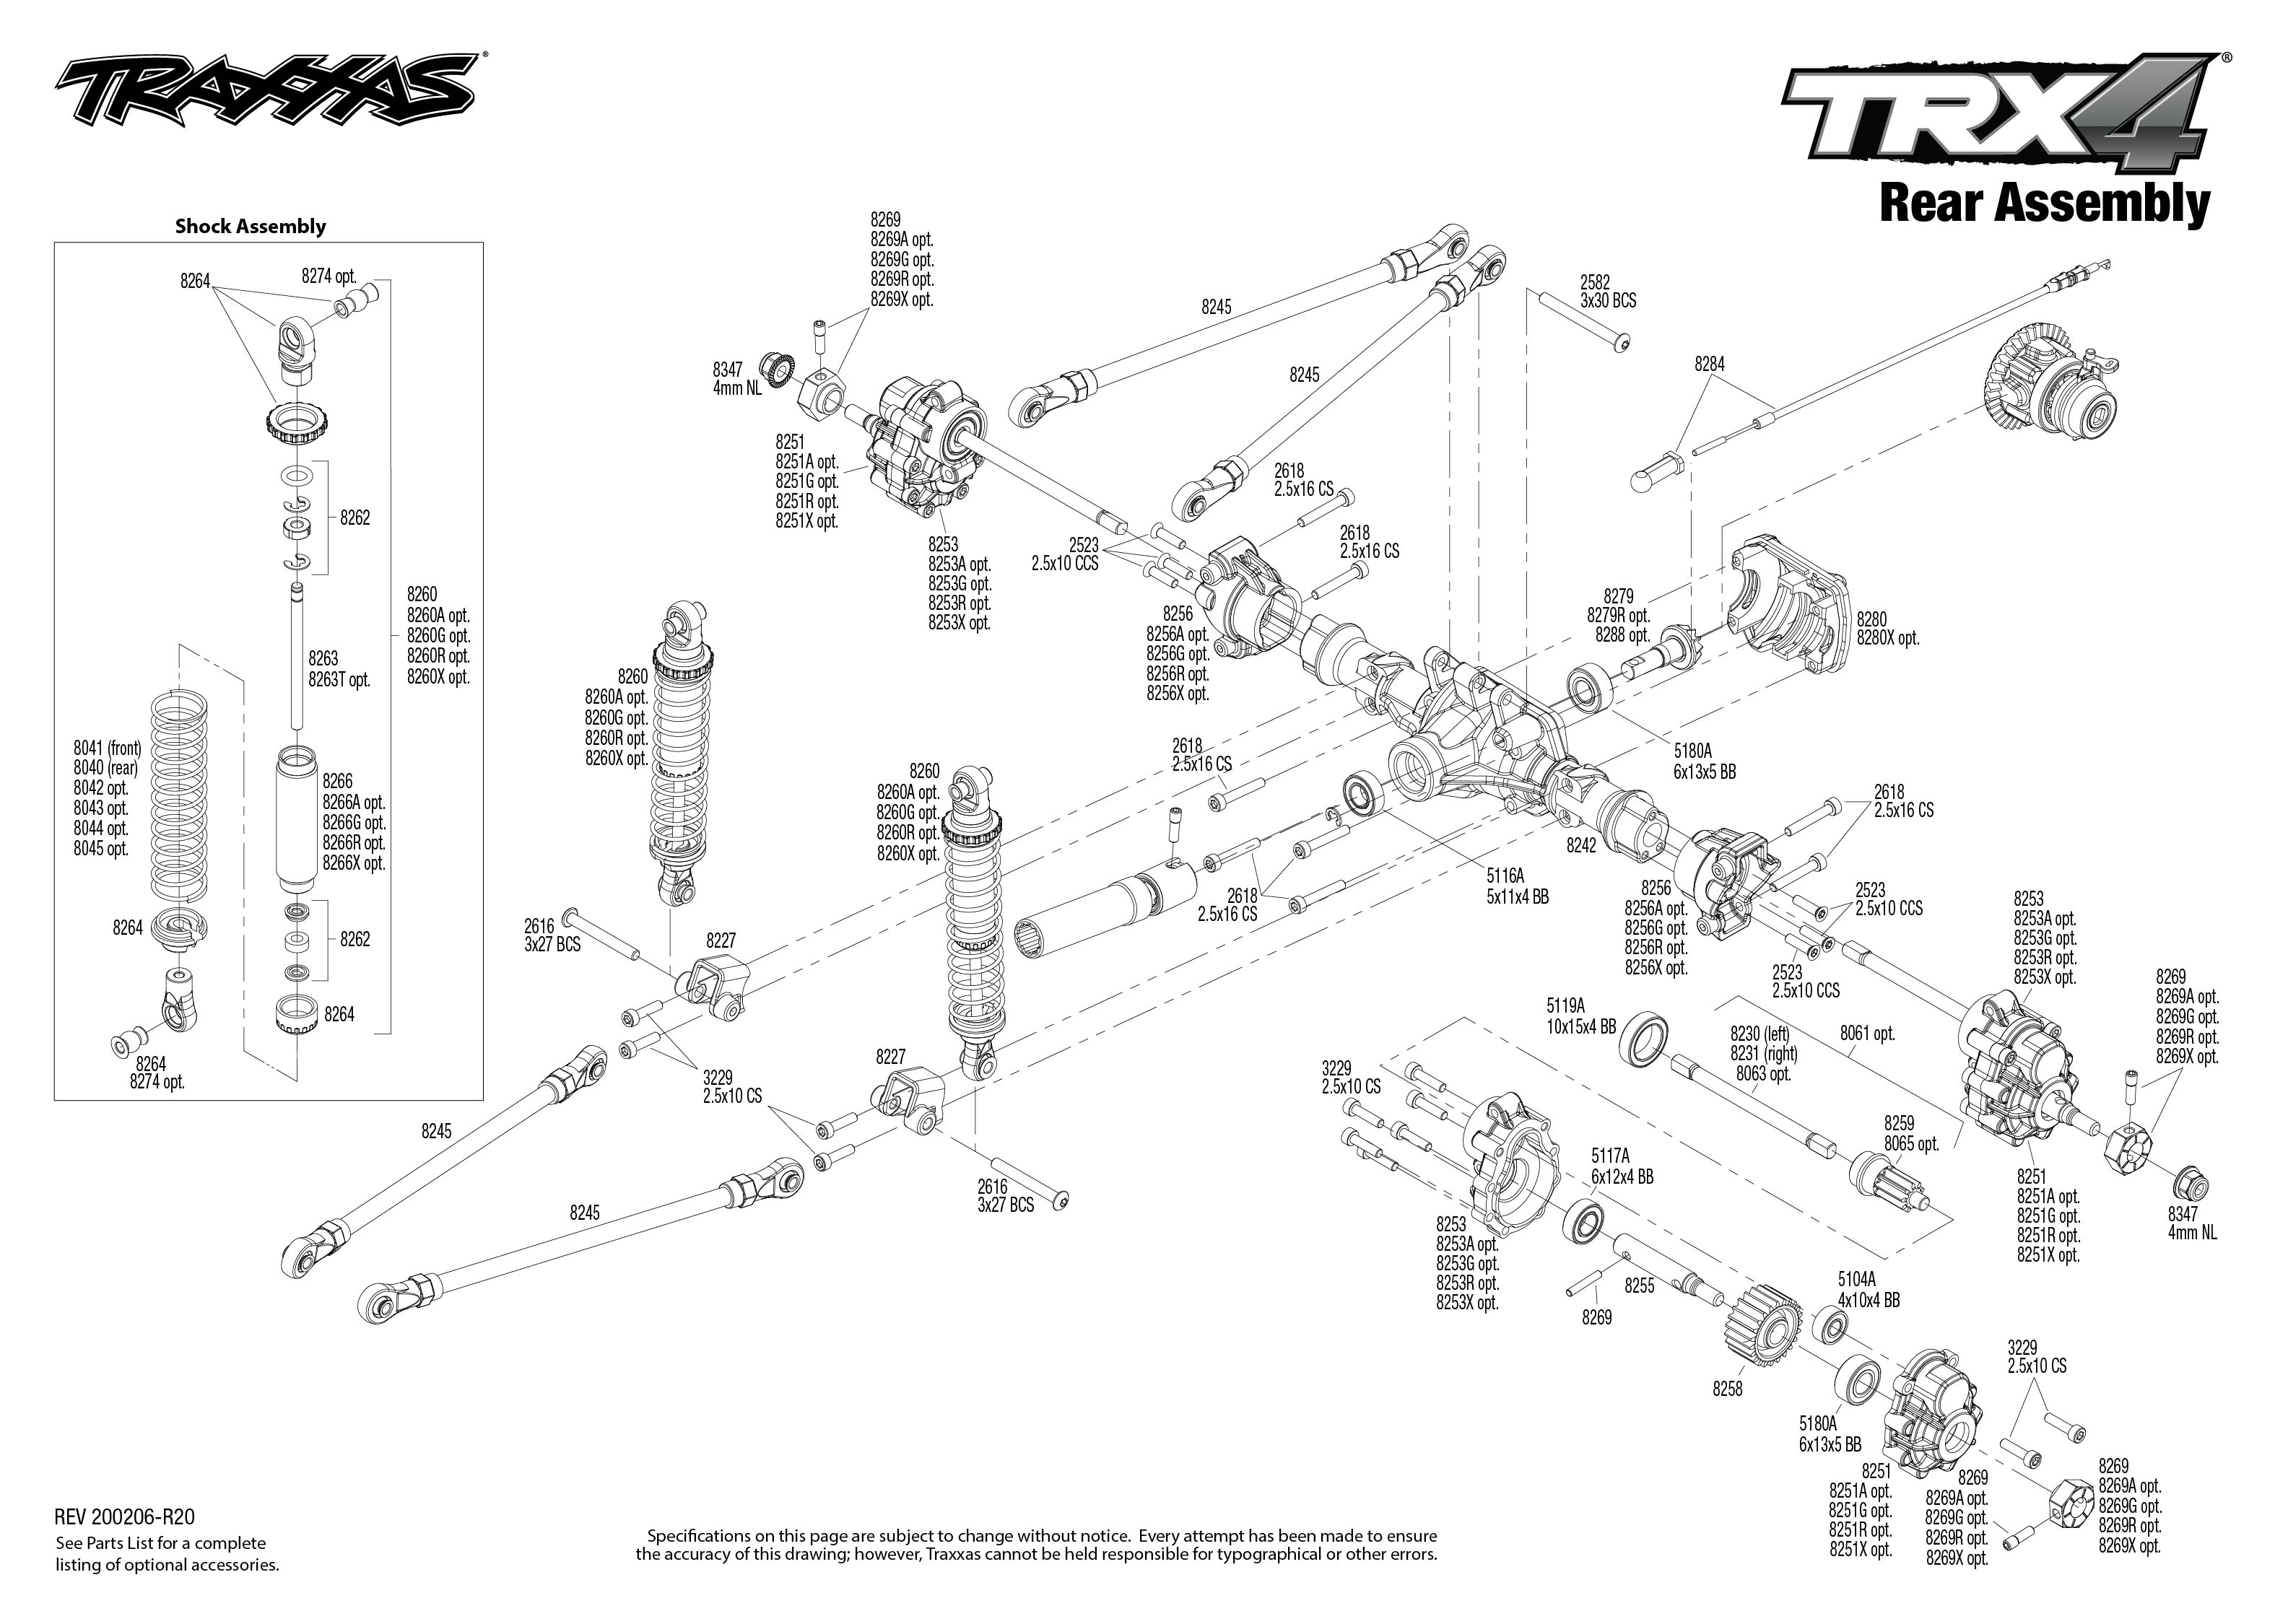 Traxxas TRX-4 Scale and Trail 1/10 4WD Crawler with Land Rover Body, Red  TRA82056-4-RED   [Cars & Trucks] - Larry's Performance RC Online lprcsLarry's Performance R/C's Online